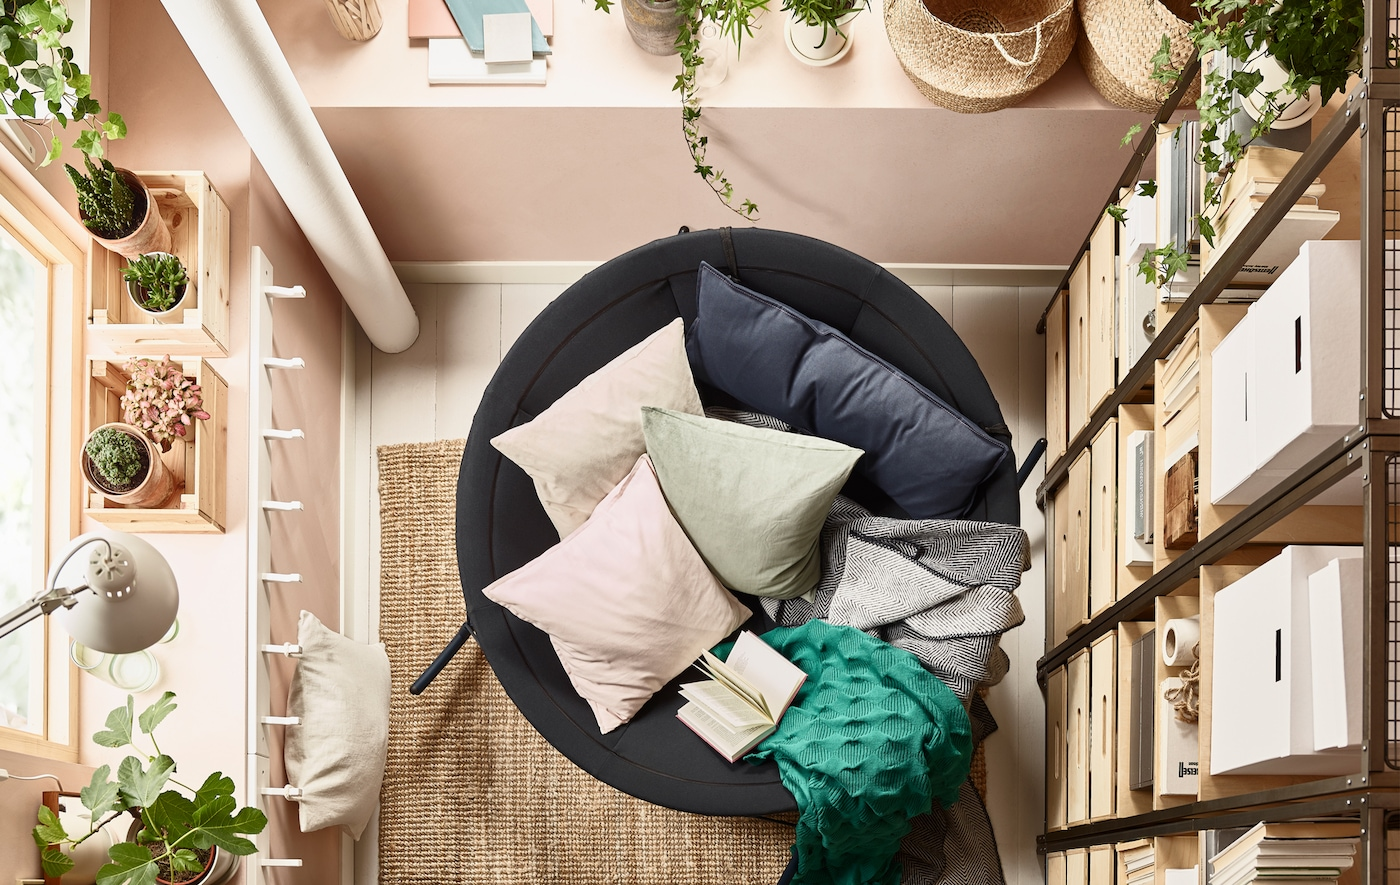 A bird's-eye view of the IKEA PS 2017 rocking chair filled with pillows.